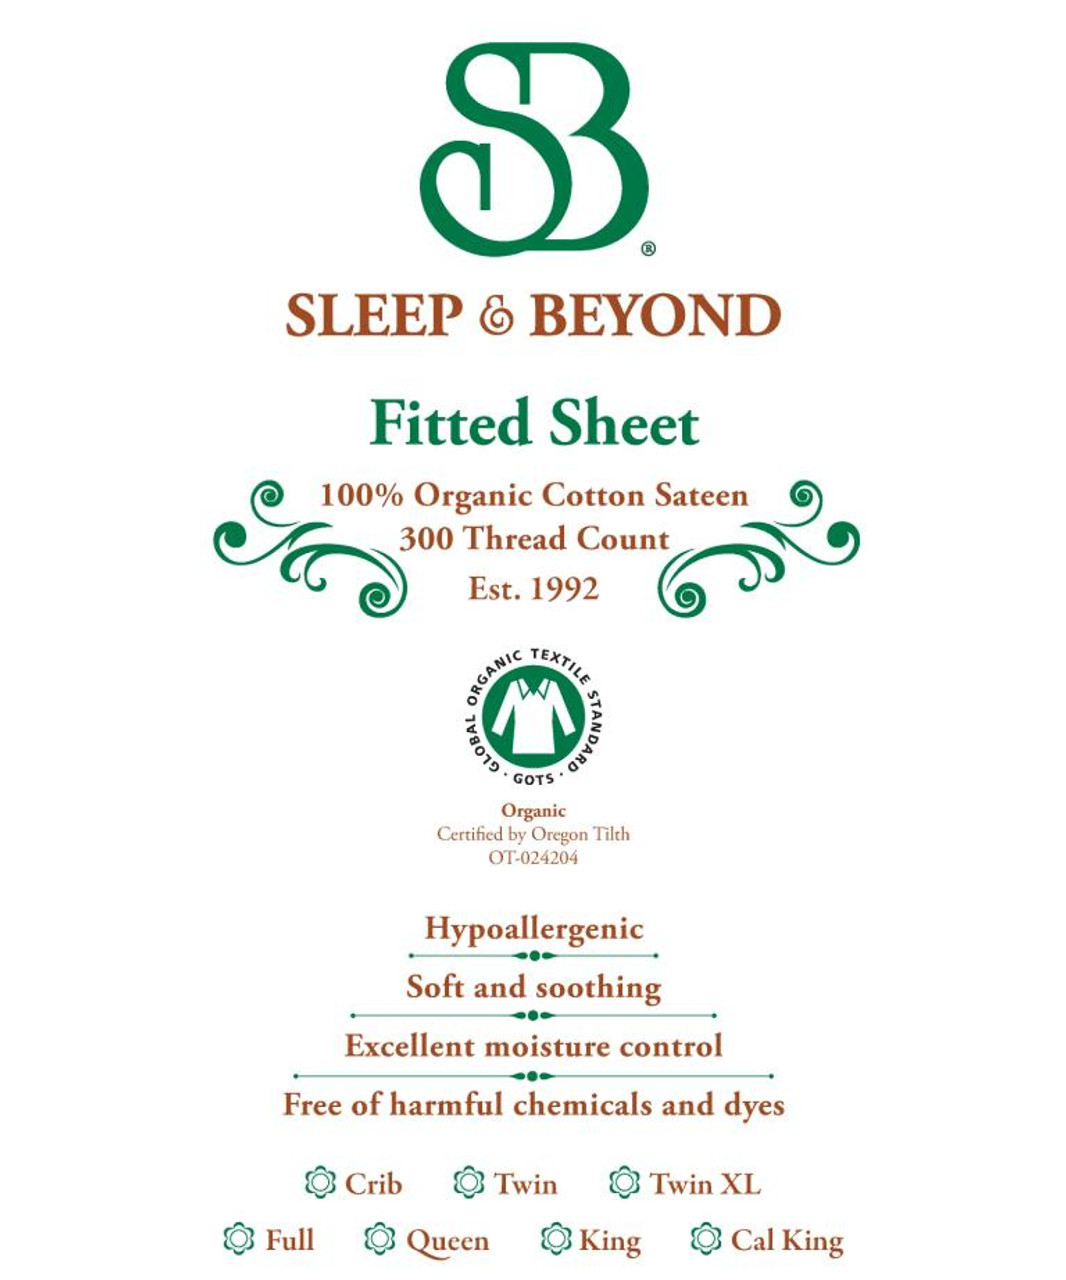 Sleep & Beyond 100% Organic Cotton Fitted Sheet Only Packaging Label